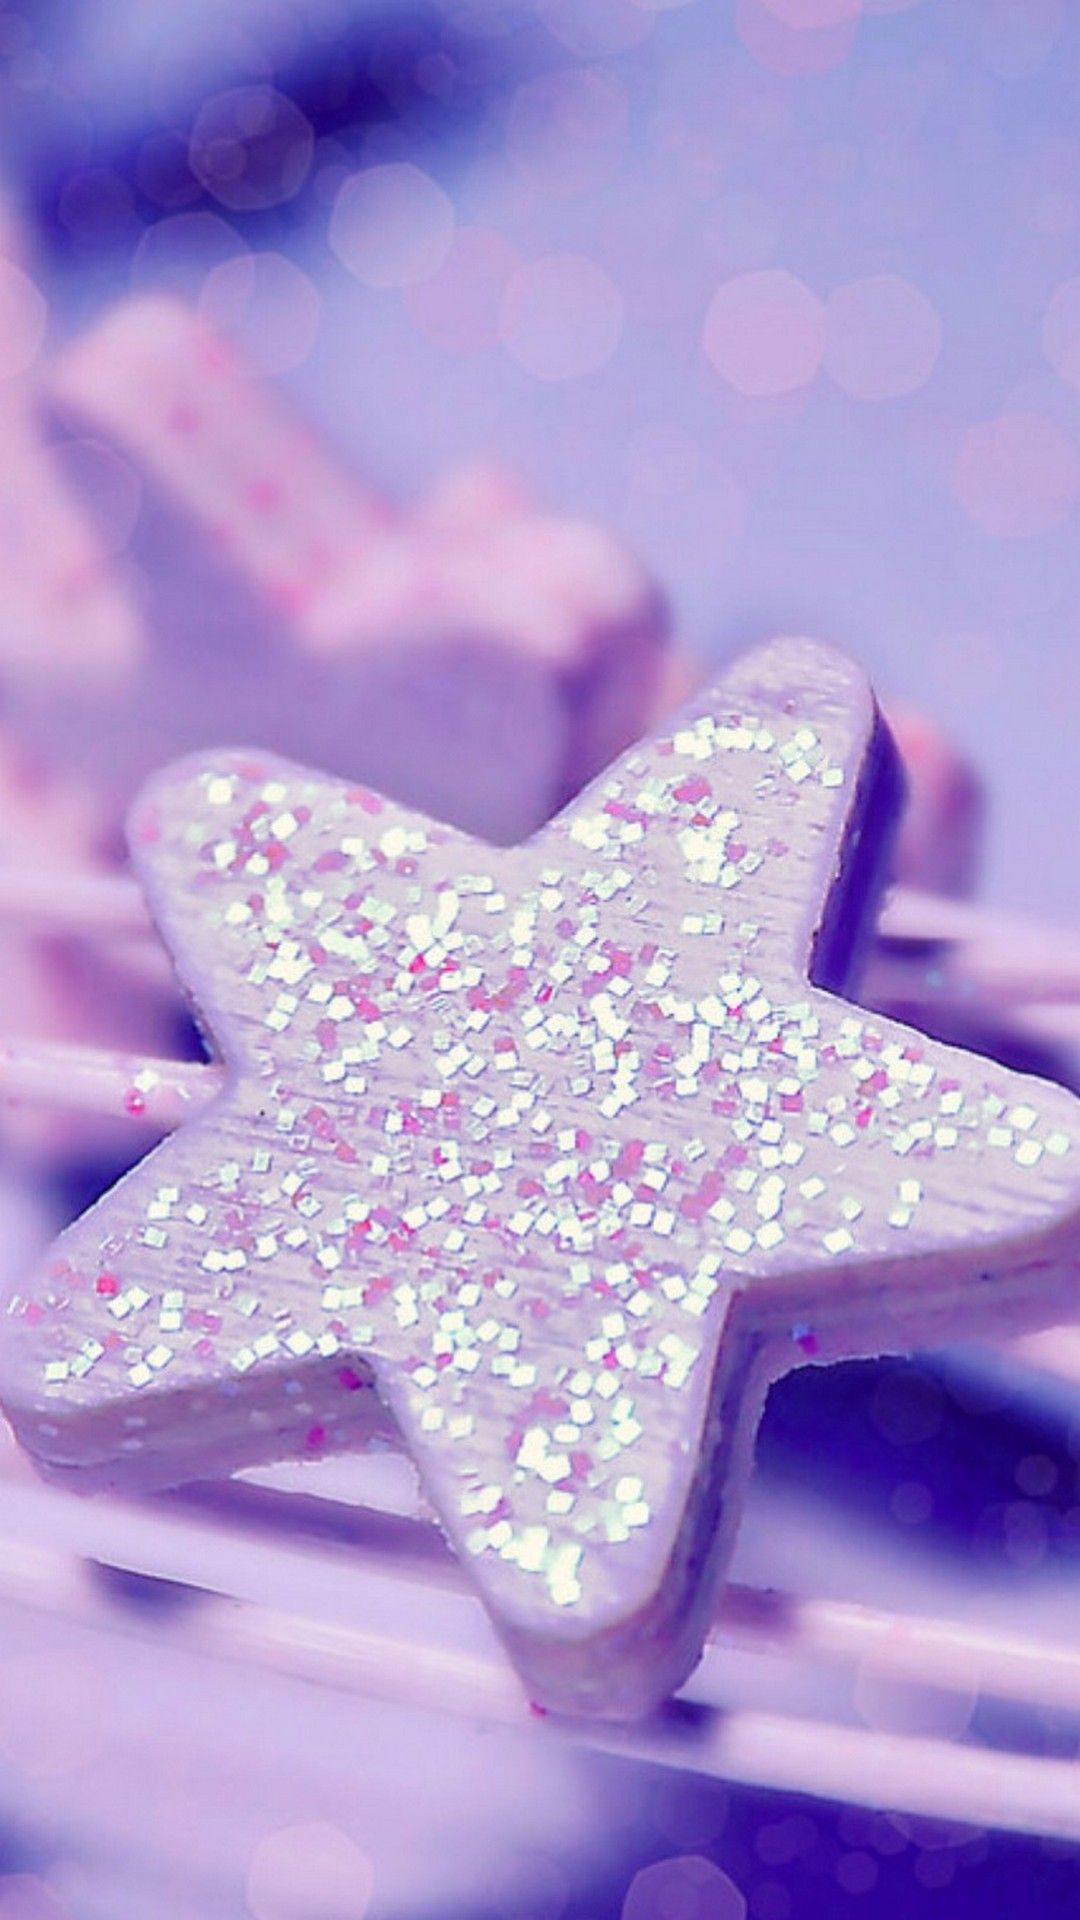 Cute Star Girly Wallpaper Android